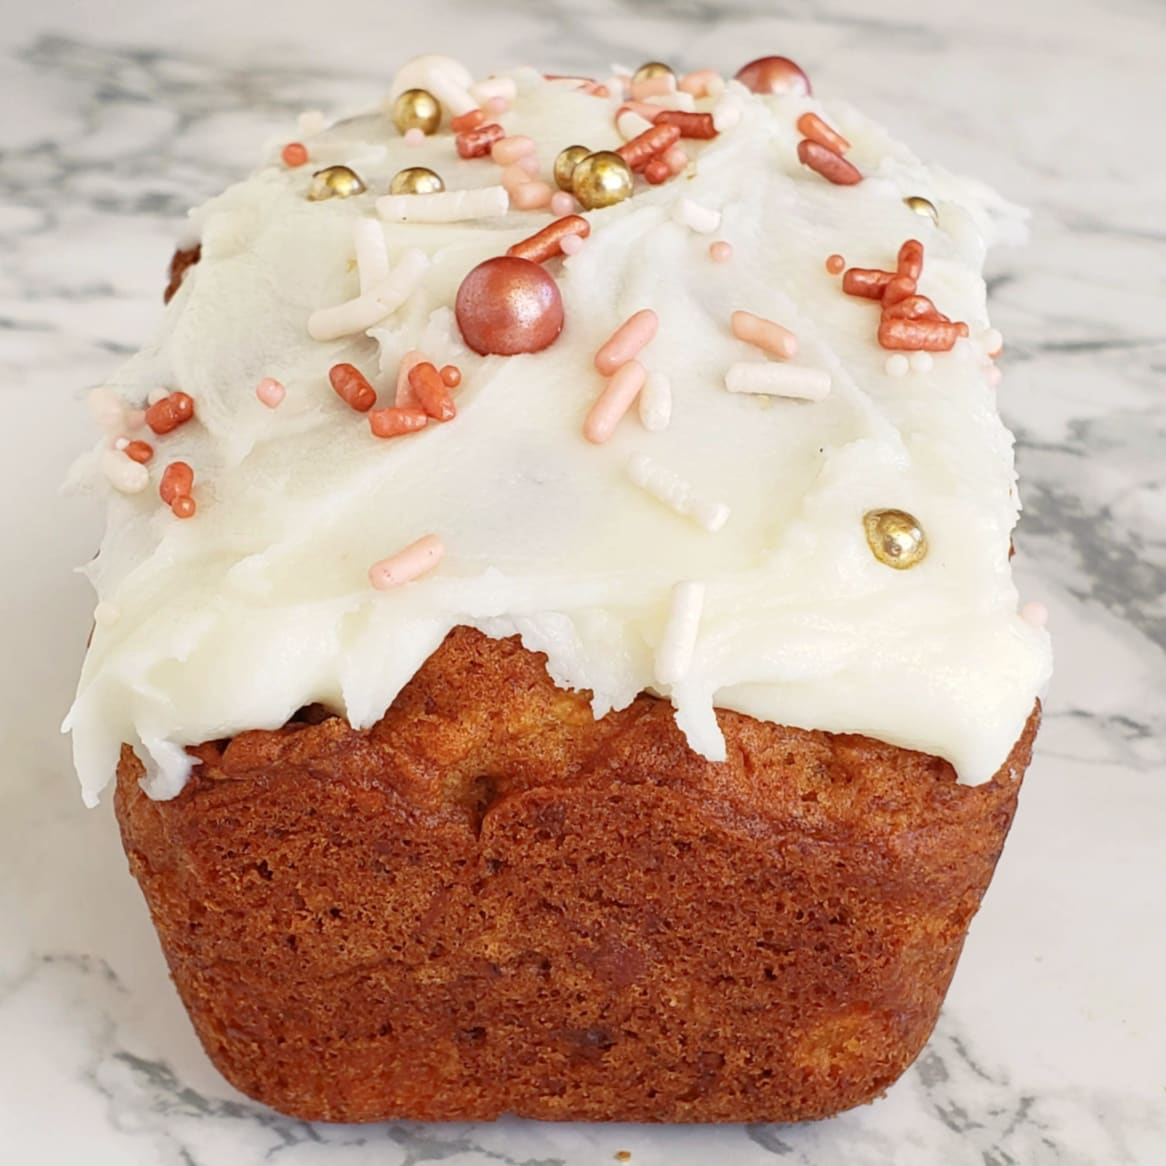 Simple Pineapple Coconut Quick Bread with frosting and sprinkles on a white marble counter